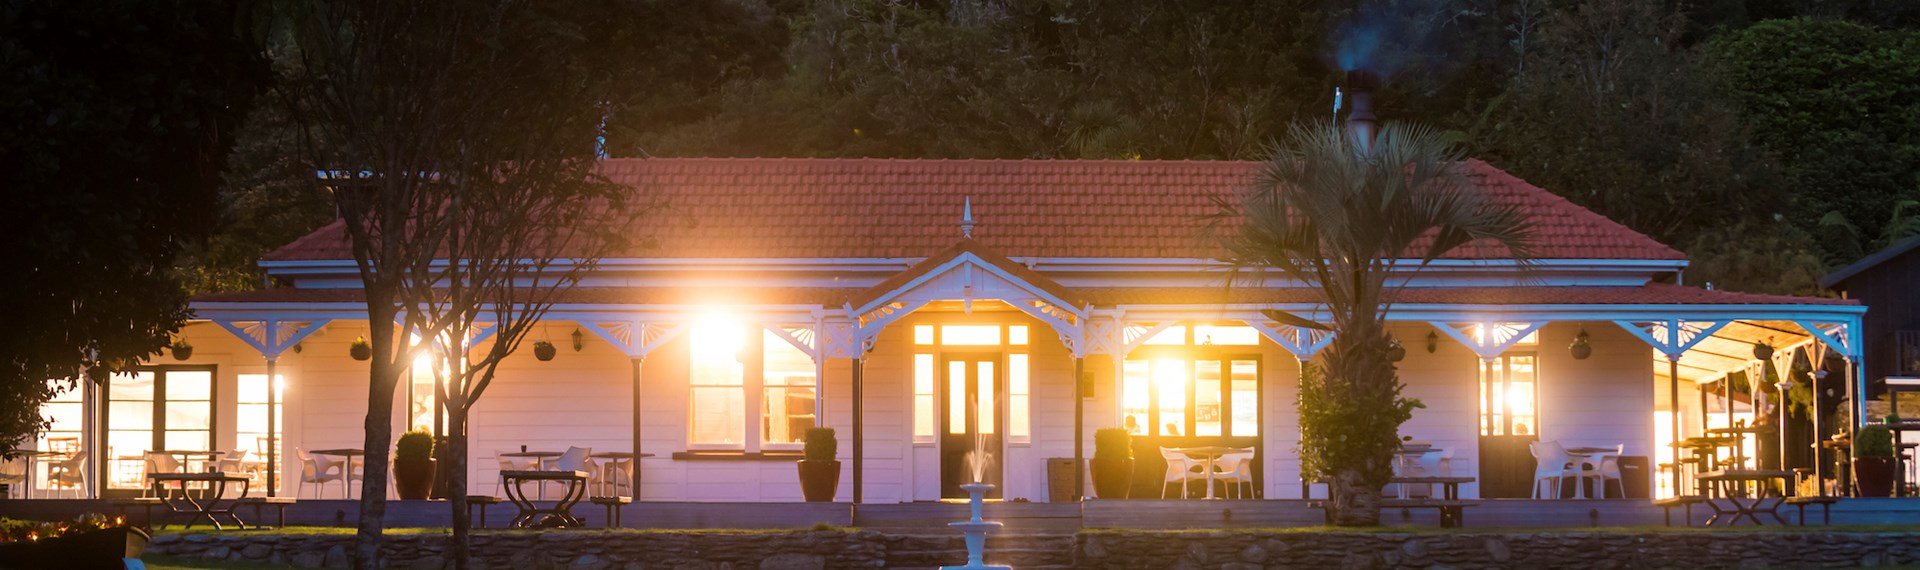 The front of historic Howden House at Furneaux Lodge showing the long verandah and orange tiled roof, in the Marlborough Sounds at the top of New Zealand's South Island.